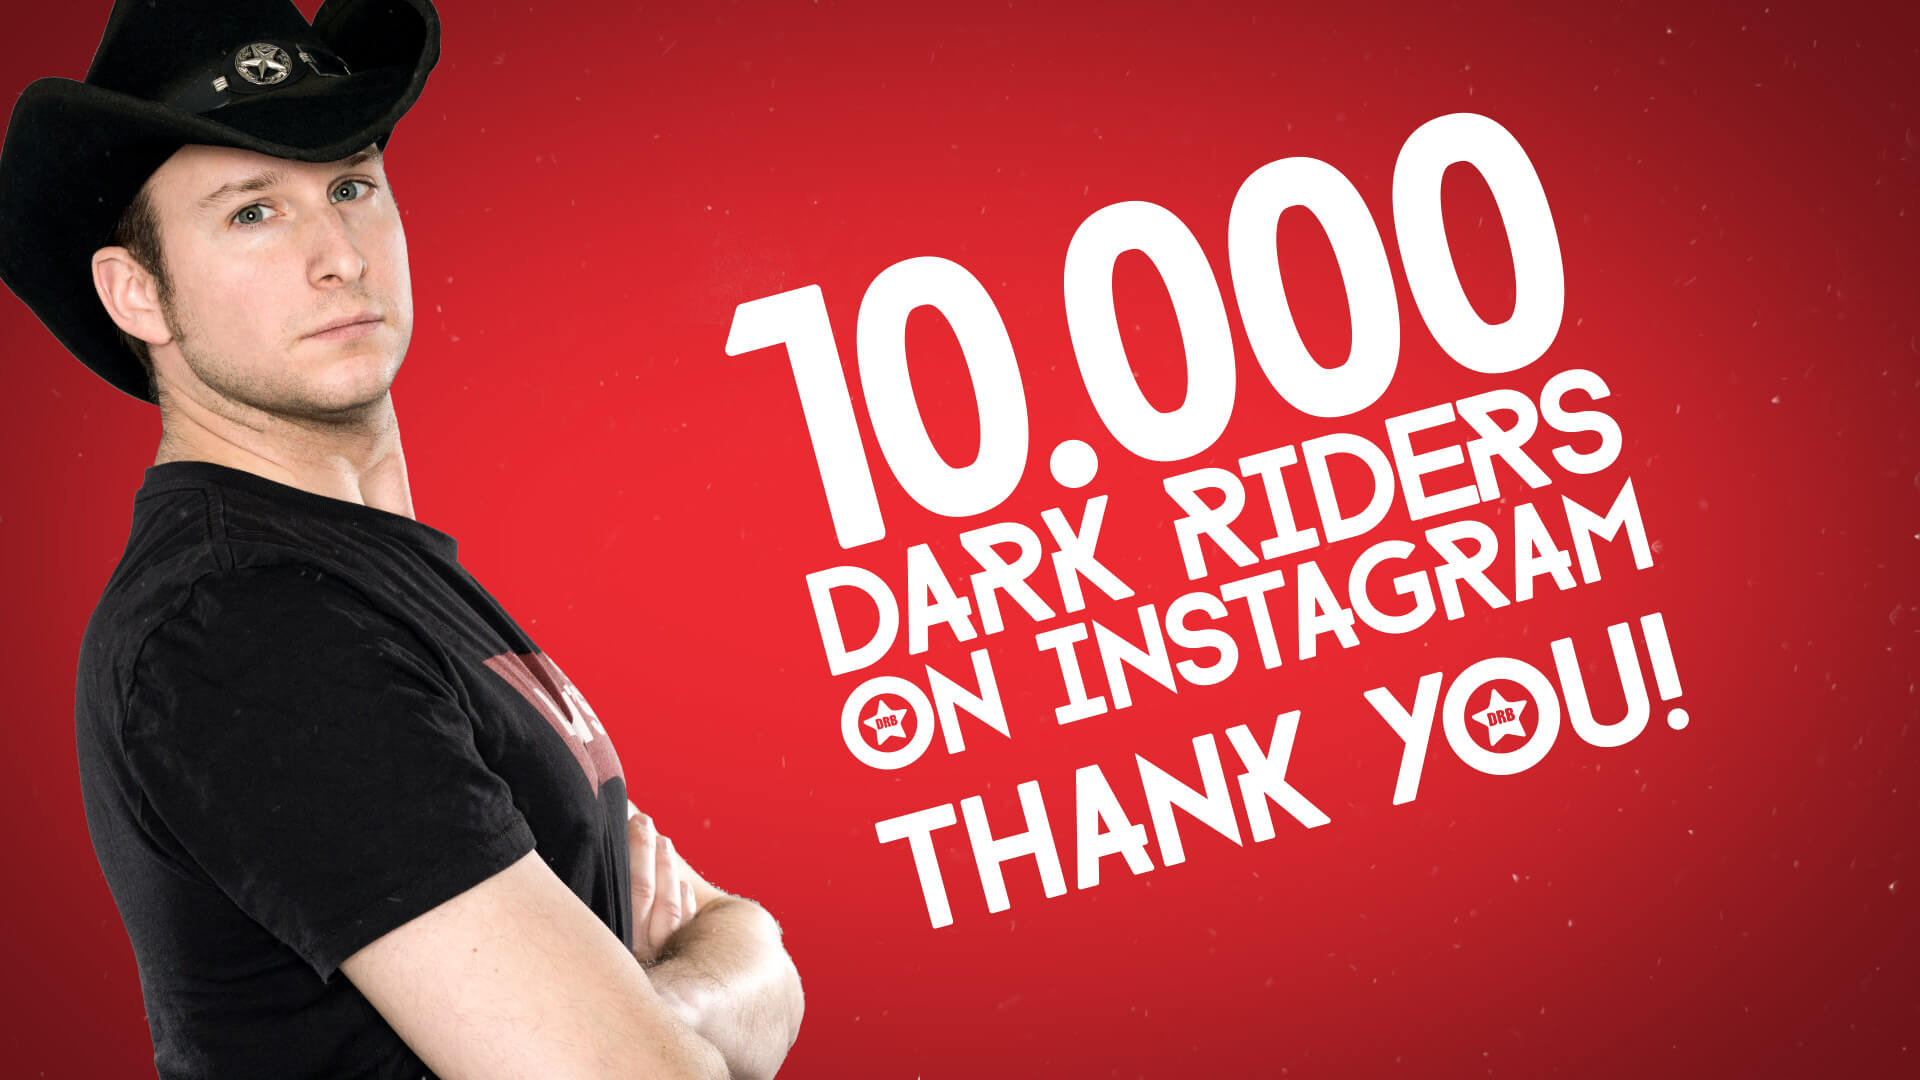 Dark Ride Brothers 10000 Followers on Instagram